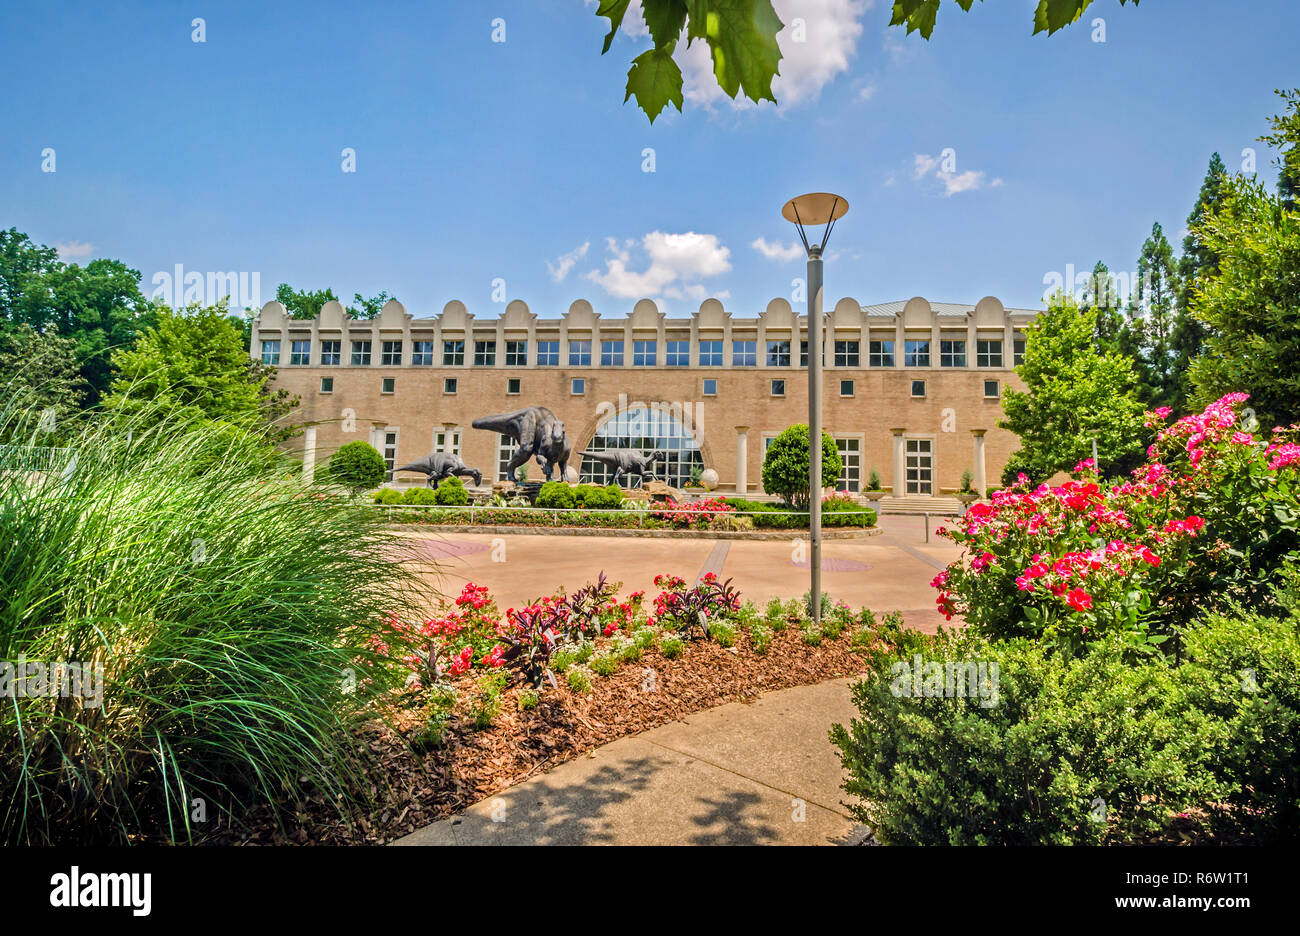 A garden path leads to the Fernbank Museum of Natural History, in Atlanta, Georgia, May 23, 2014. - Stock Image